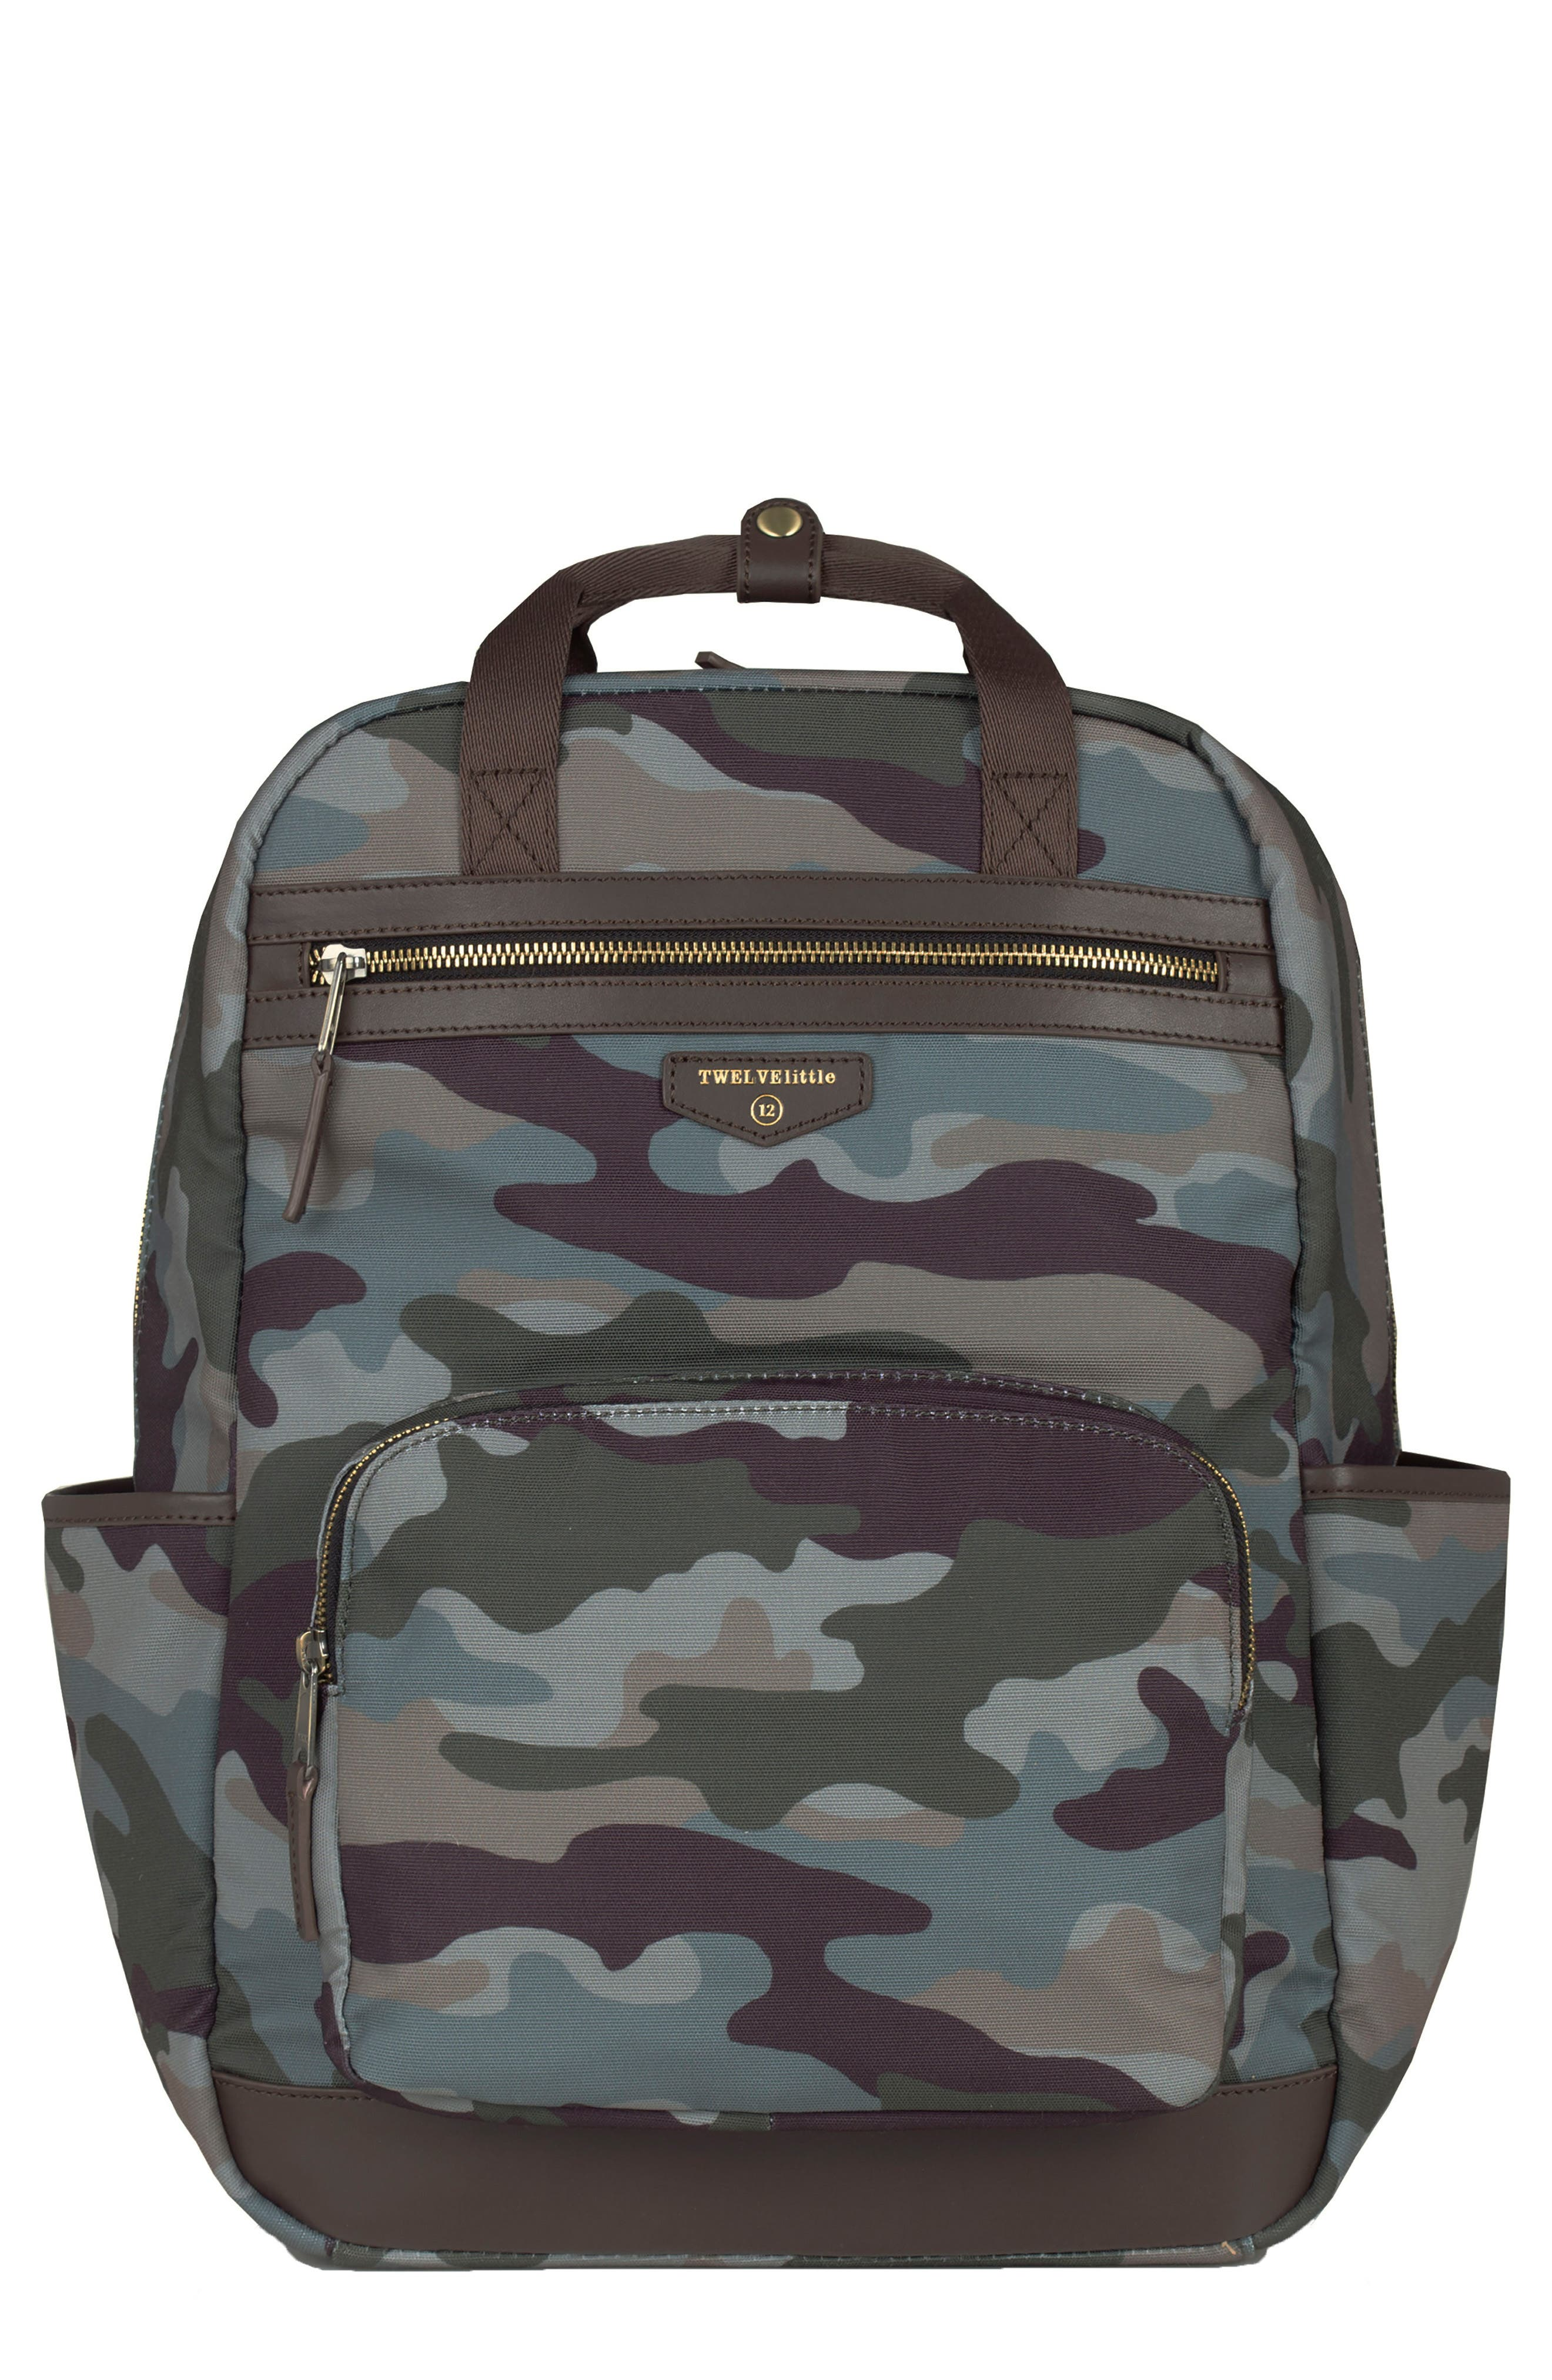 'Courage' Unisex Backpack Diaper Bag,                         Main,                         color, Camouflage Print